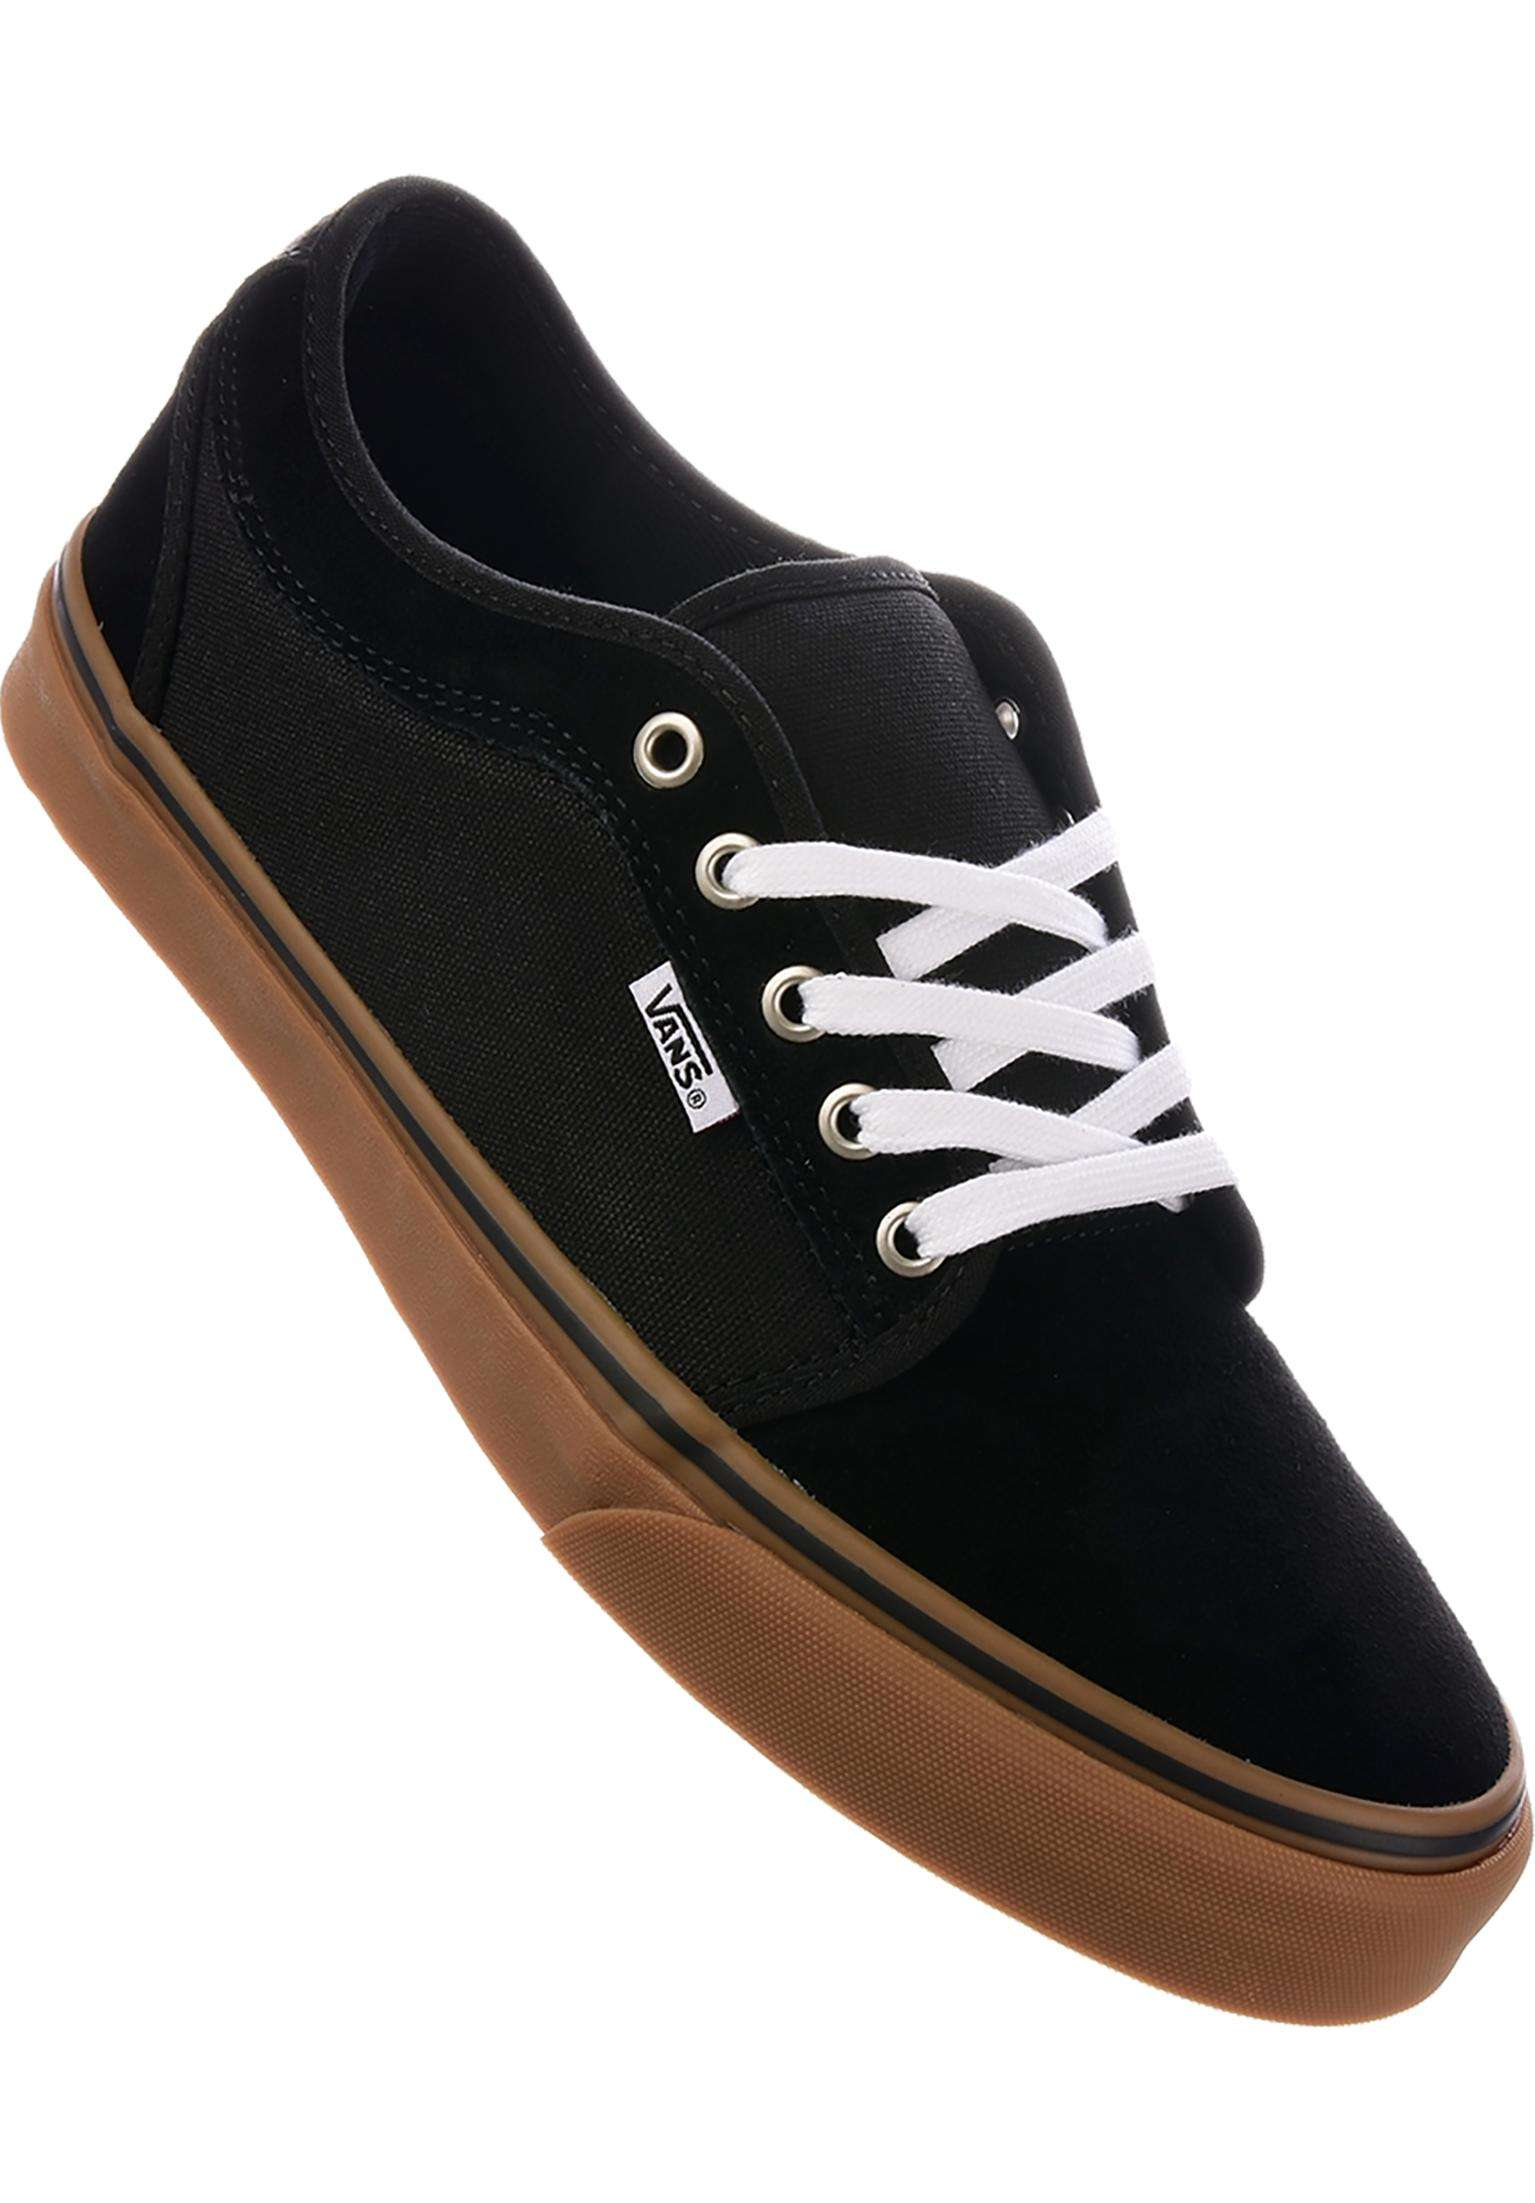 92c5665349 Chukka Low Pro Vans All Shoes in black-black-gum for Men